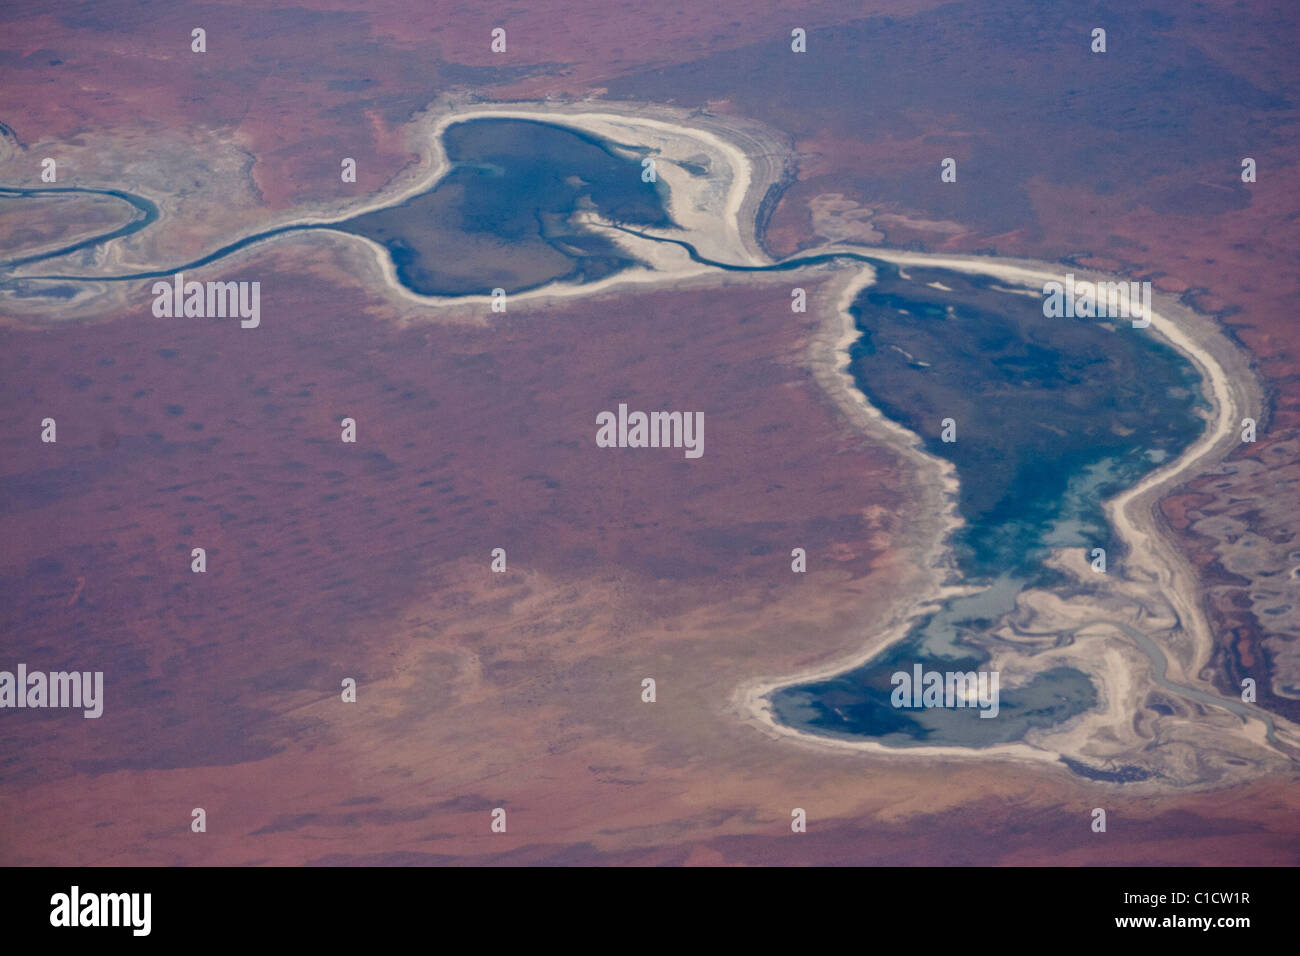 In the air over Central Australia - Stock Image